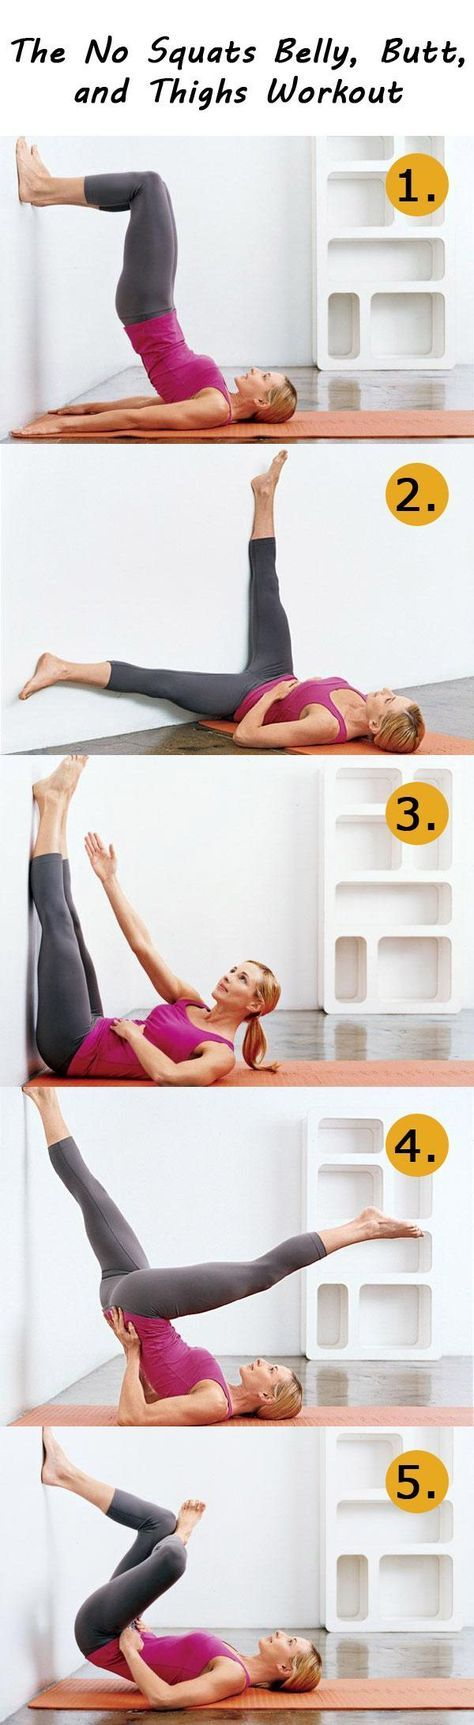 best images about inner thigh workout on Pinterest  Thighs For